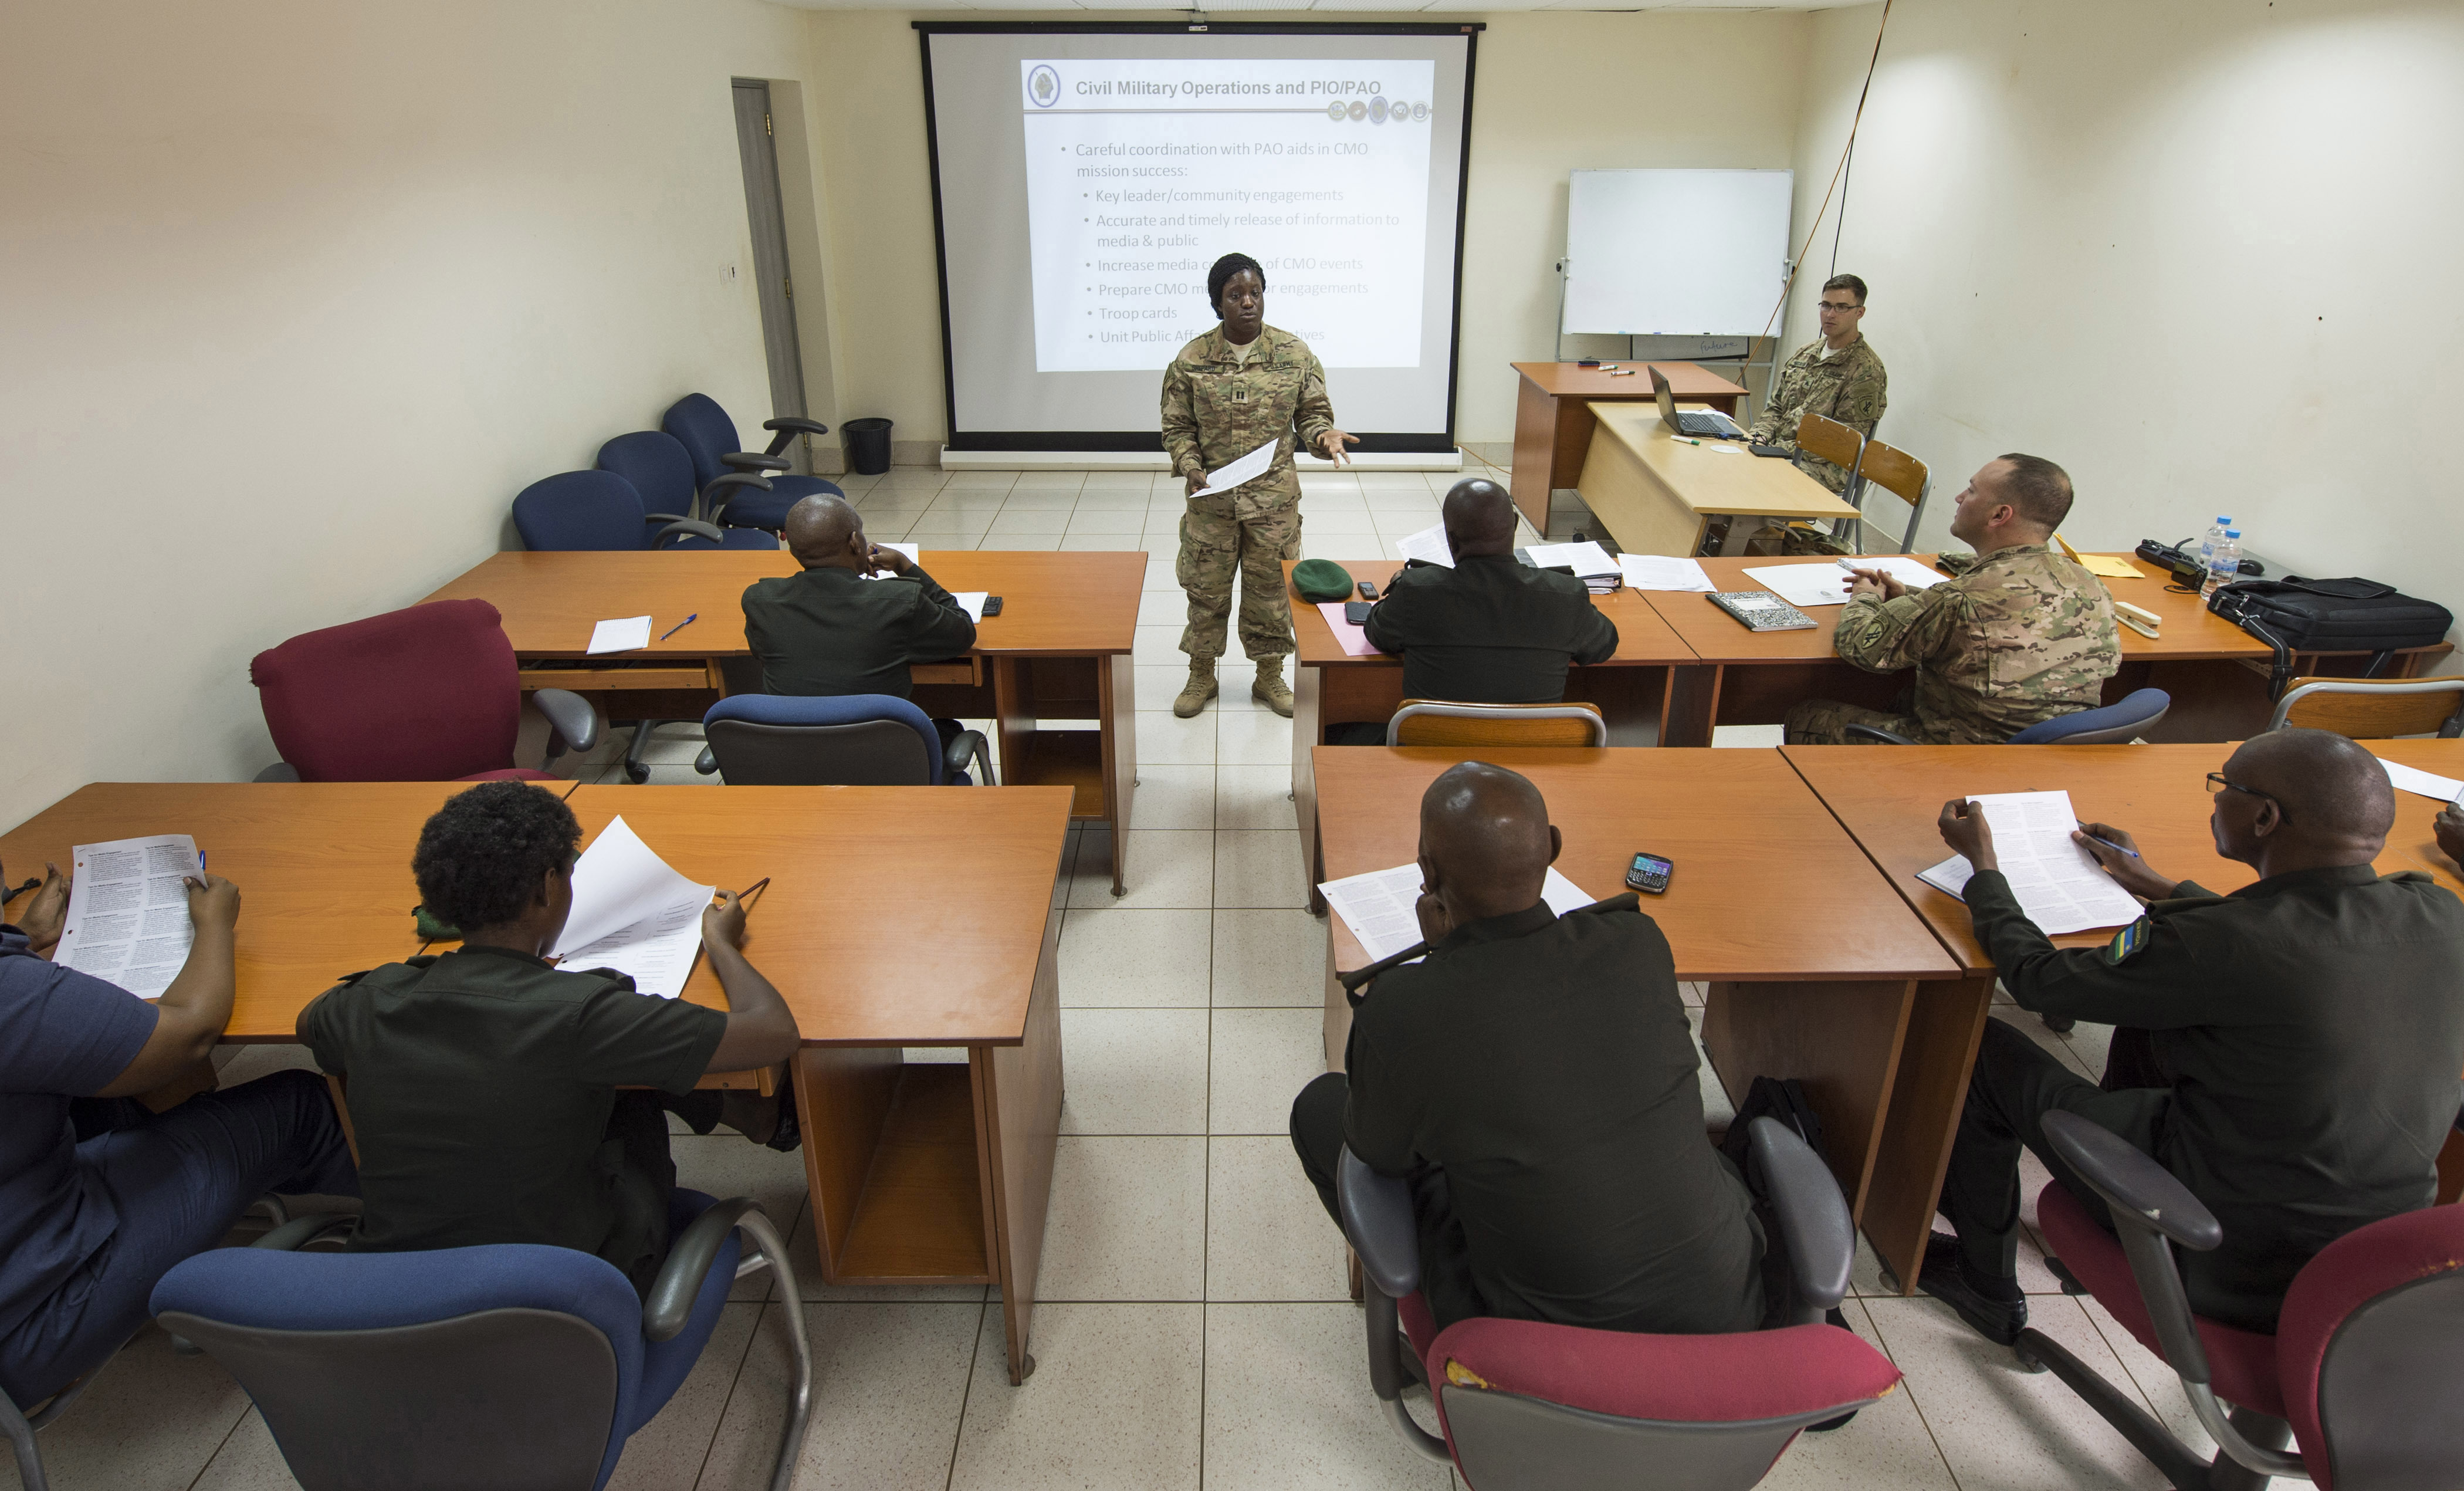 U.S. Army Capt. Morgan Shepard, Combined Joint Task Force-Horn of Africa Public Information officer, discusses civil military operations and the roles of Public Affairs and Public Information Officers, Feb. 2, 2016, at RDF headquarters, Kigali, Rwanda. During the engagement, U.S. Army civil affairs and Rwanda Defense Force Civil Military Co-operation (CIMIC) discussed similarities and differences between the organizations. The RDF will use the knowledge gained during the event to address training and organizational needs for their forces. (U.S. Air Force photo by Senior Airman Peter Thompson)